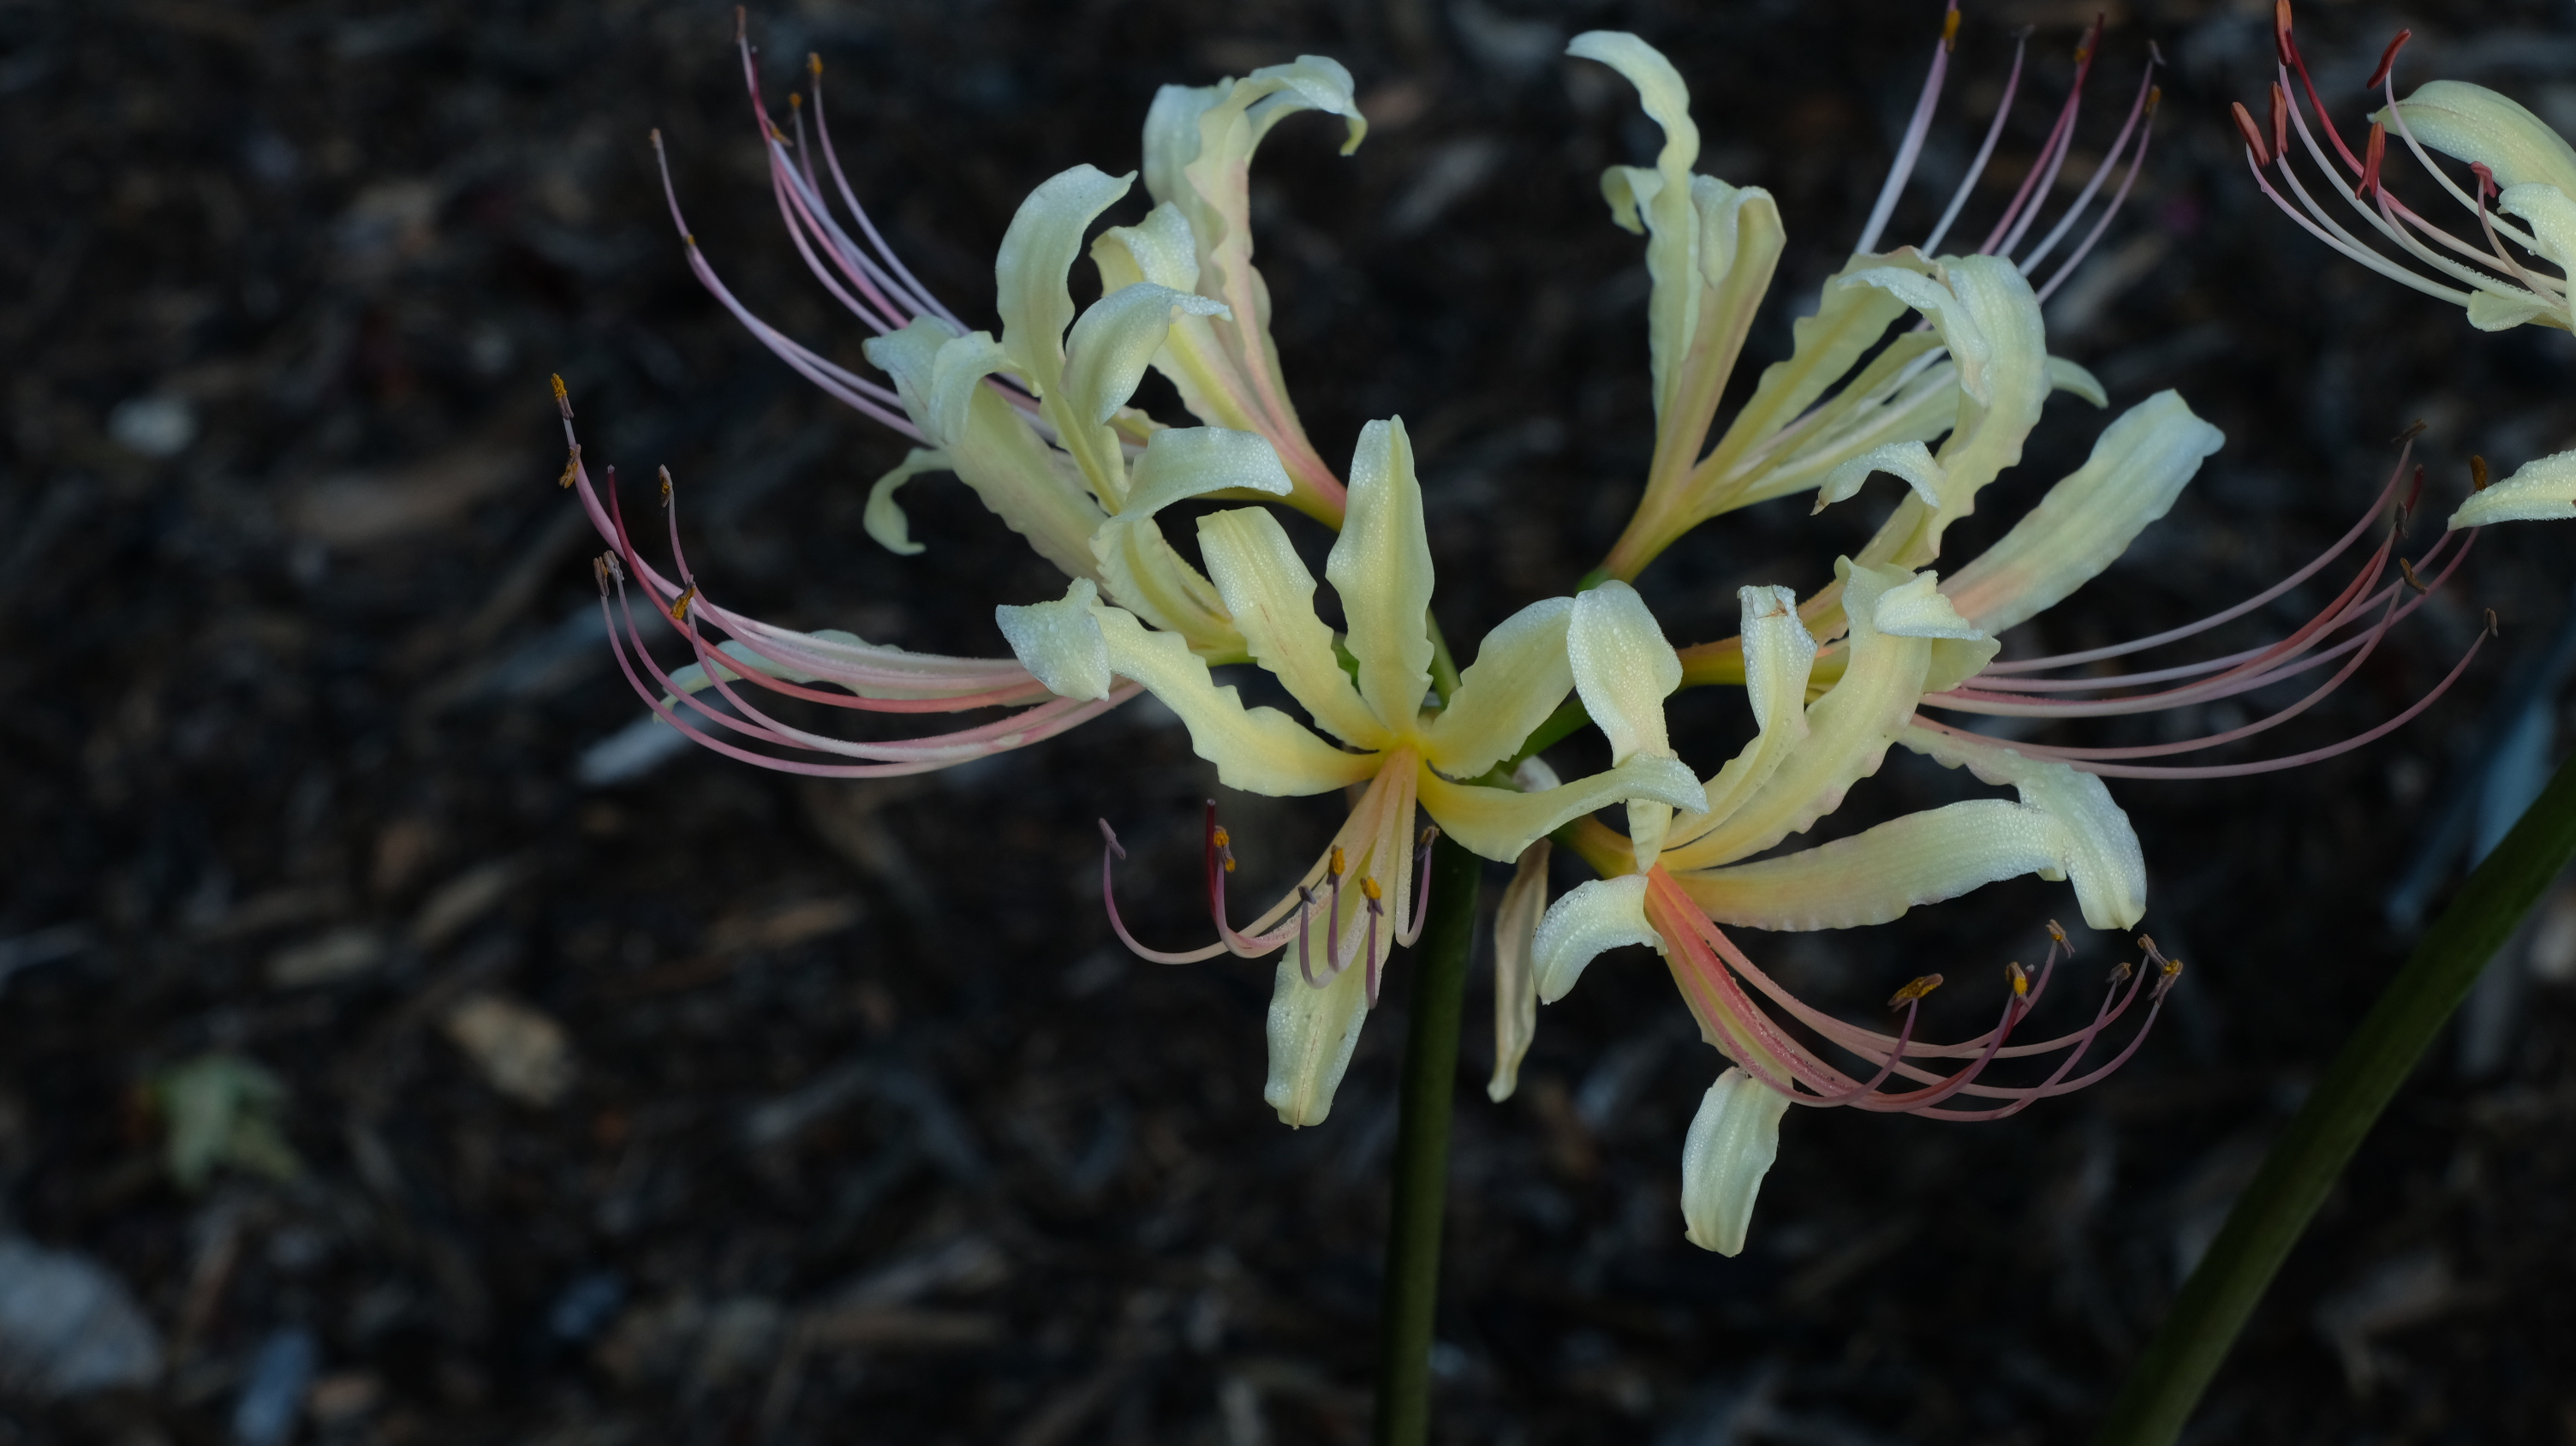 Lycoris x straminea 'Mellow Yellow' @ JLBG (aka: Adams #56)